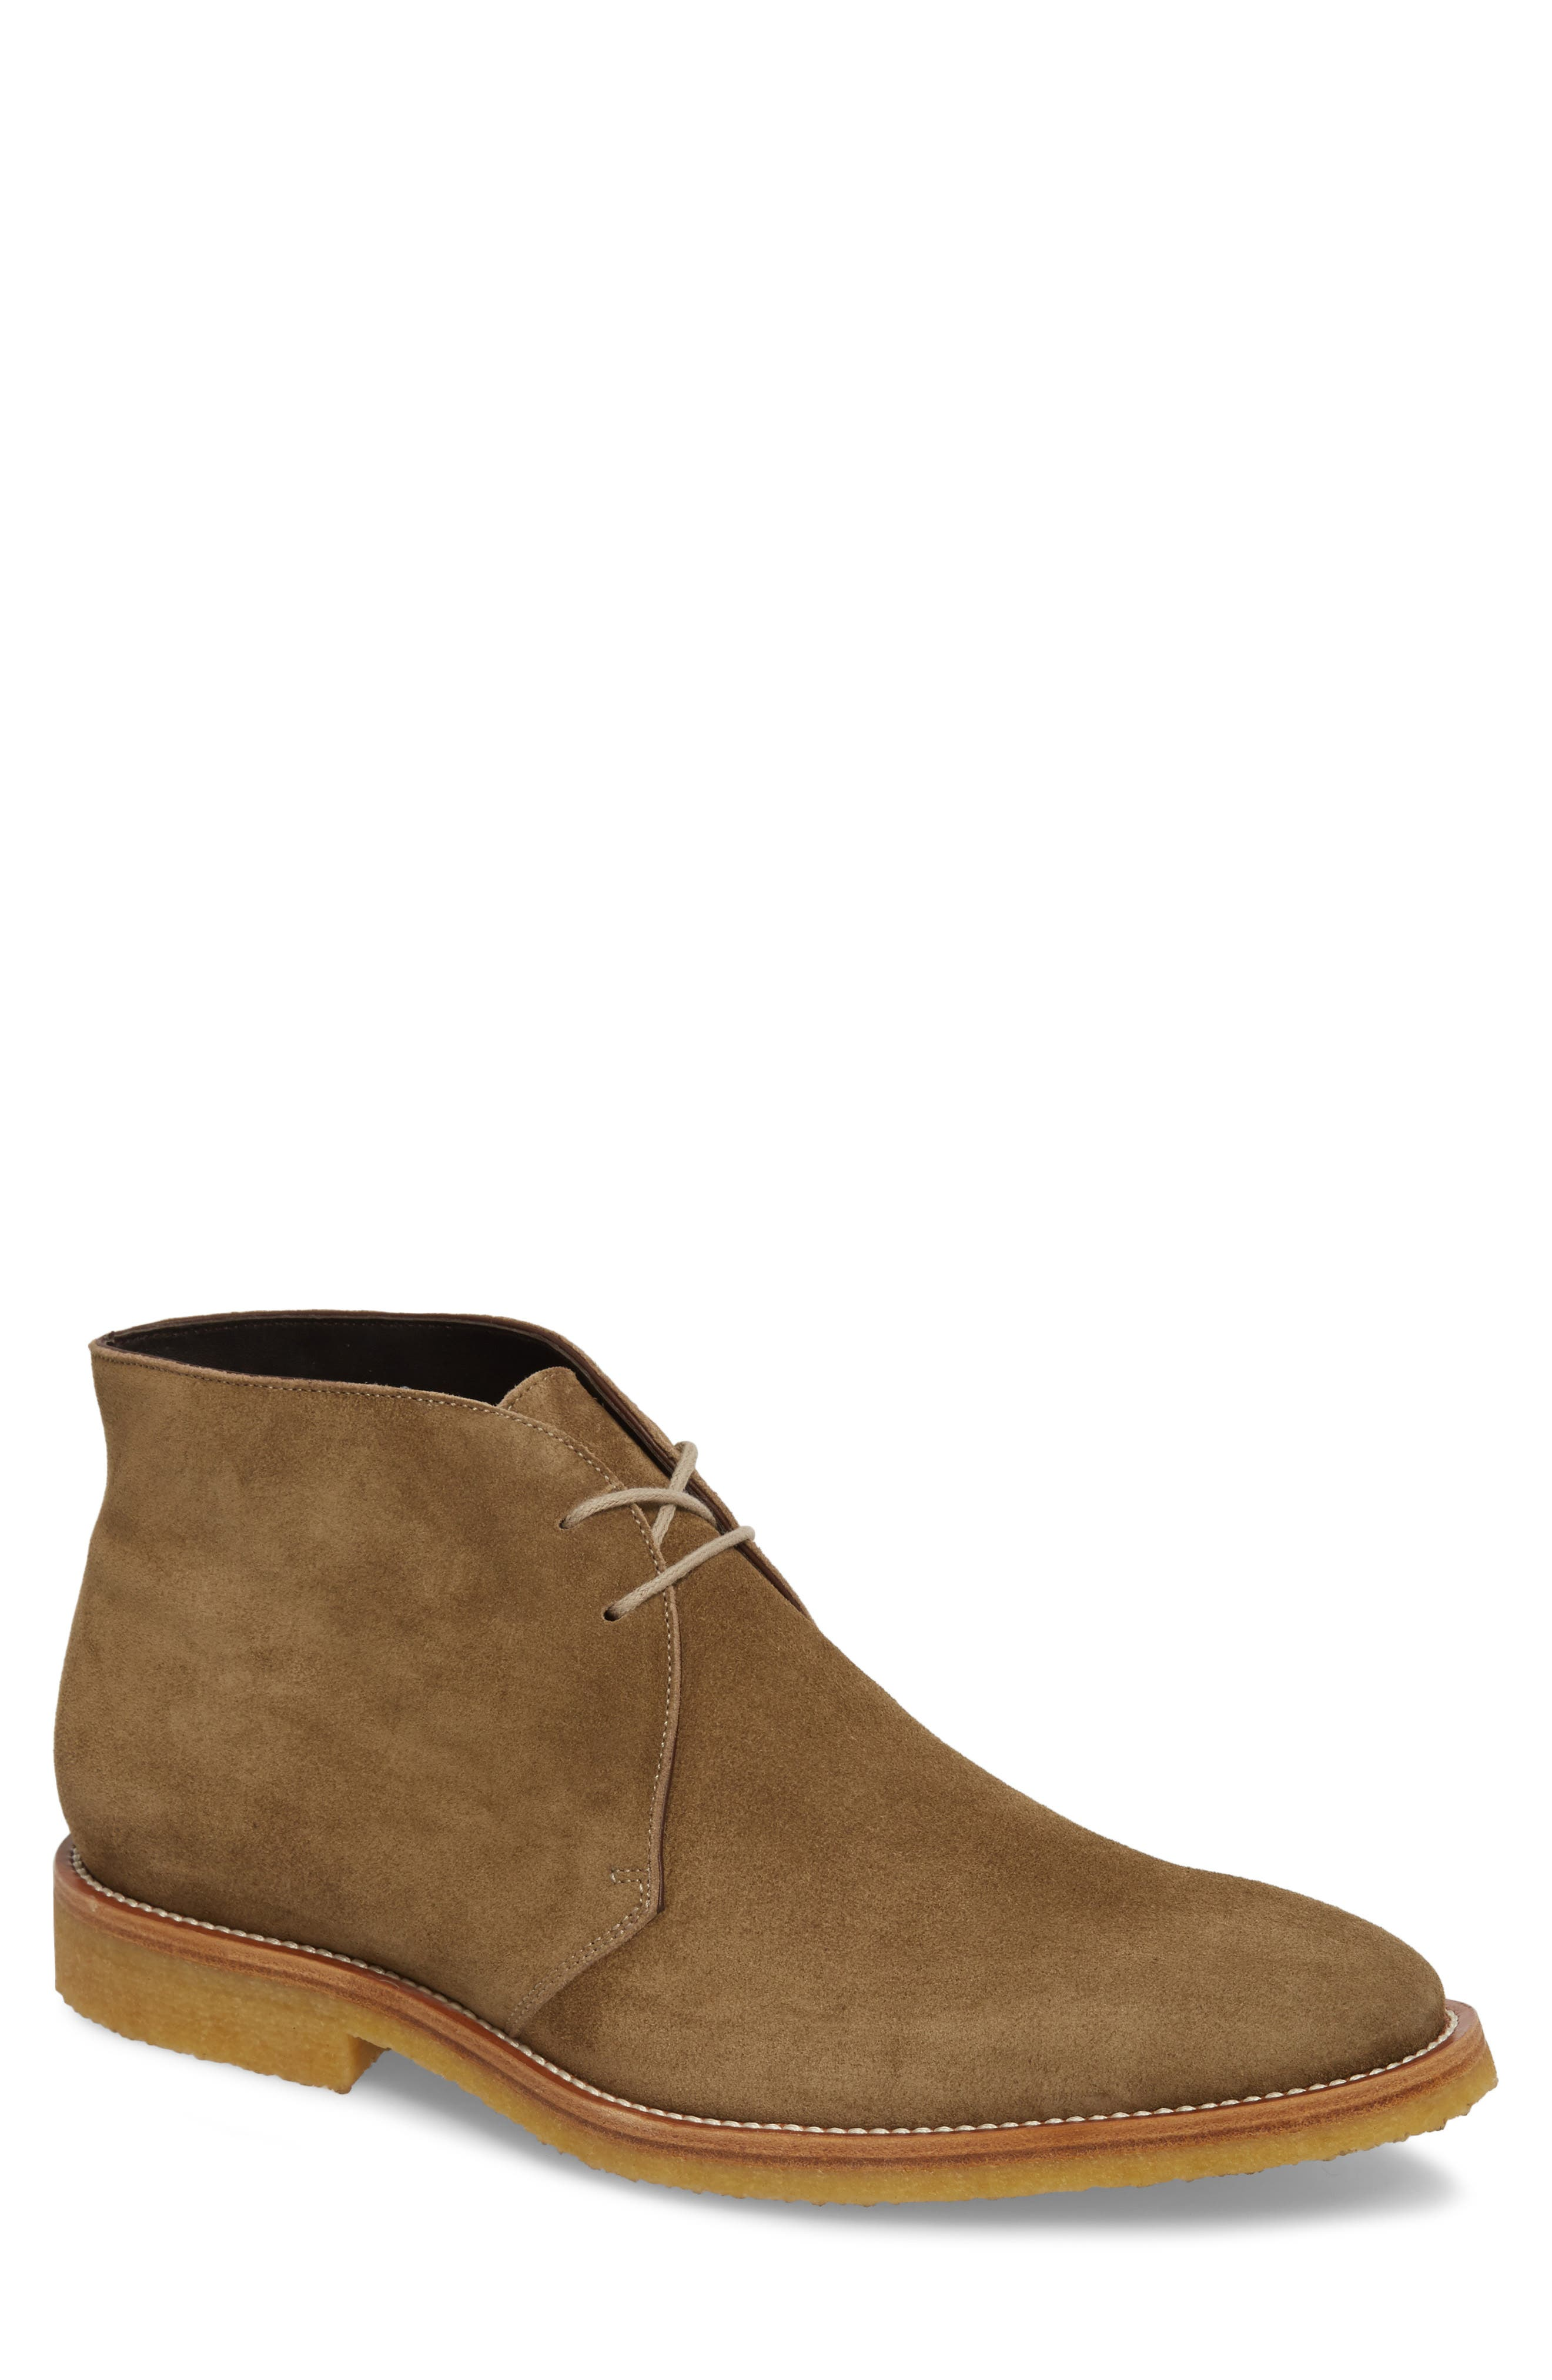 Banker Chukka Boot,                         Main,                         color, Taupe Suede